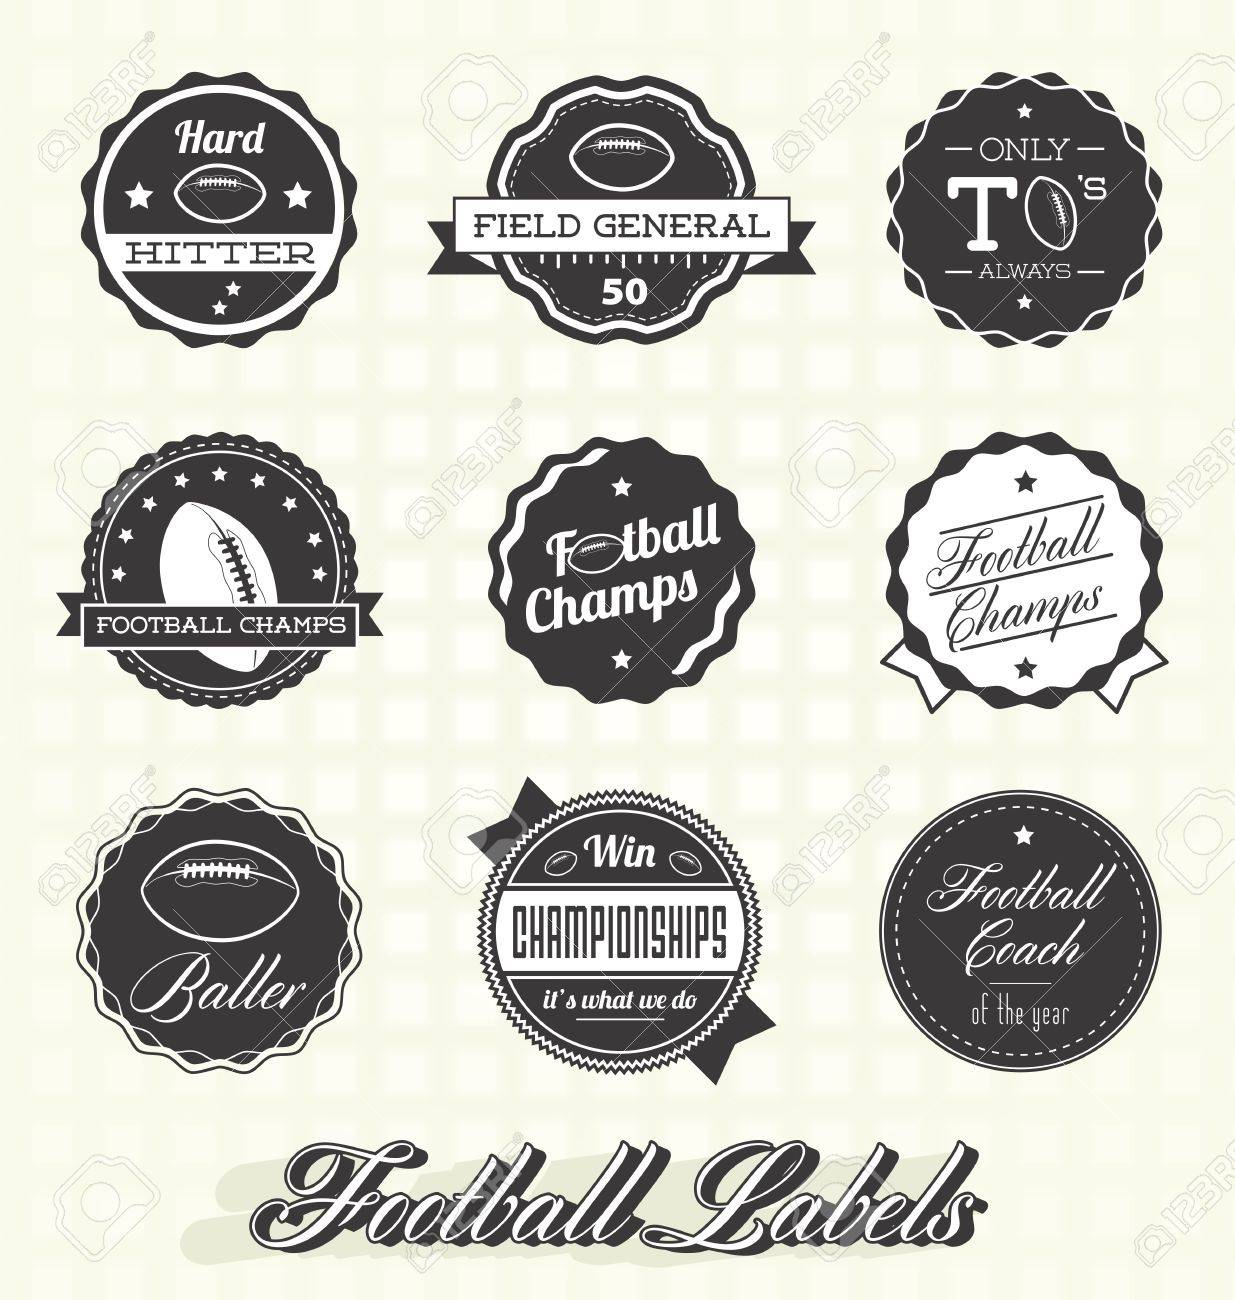 Retro Football Champs Labels Stock Vector - 20238797